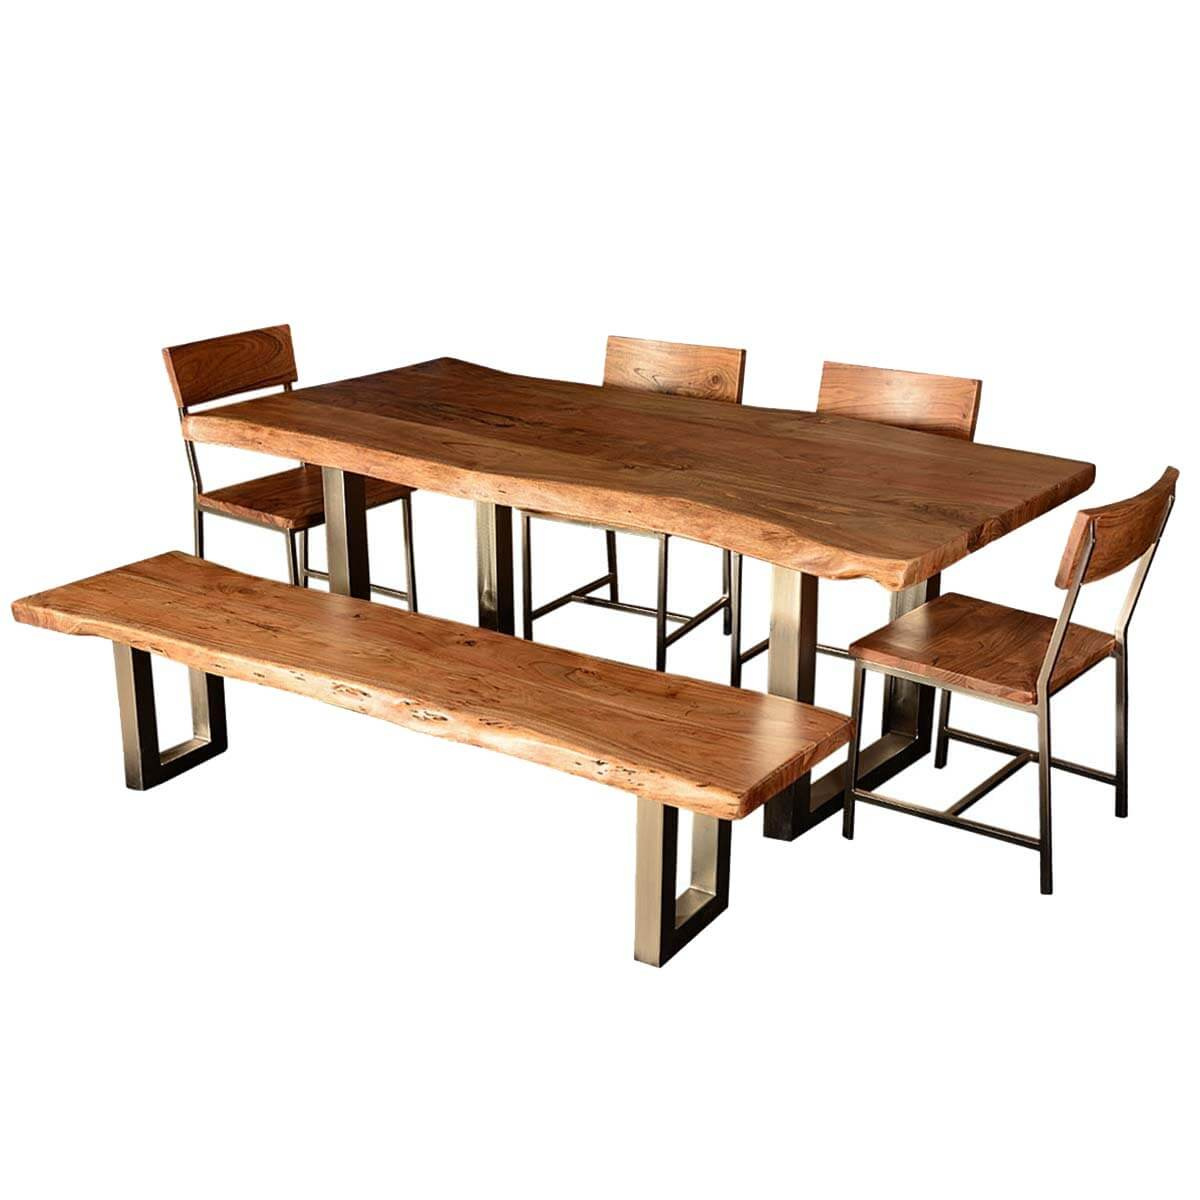 Hankin wood iron base live edge dining table for Bench style dining set